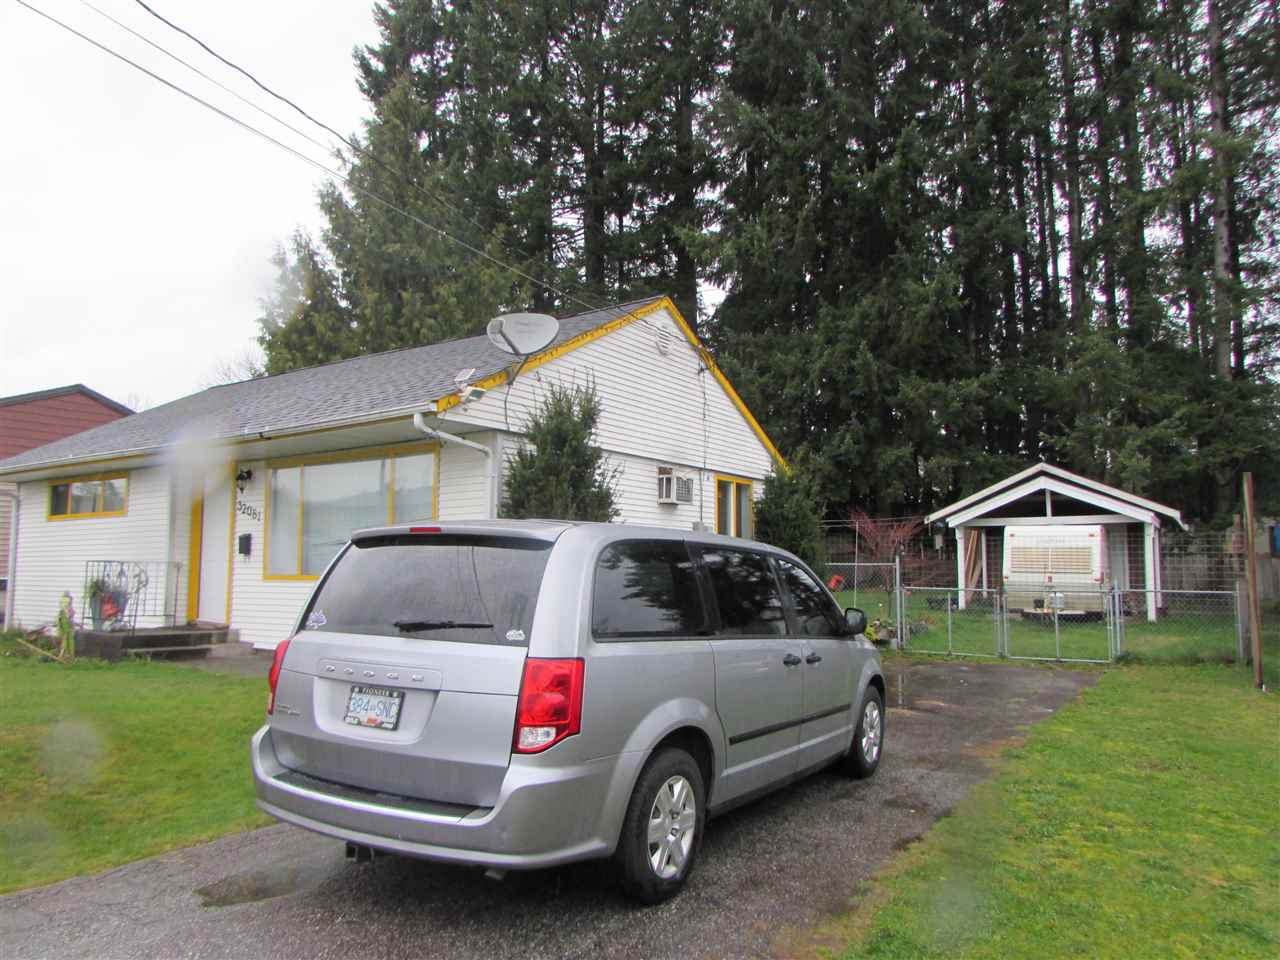 Well Maintained 2 Bedroom Rancher on large 7860 SqFt lot. OCP Says Multi Family. Large workshop at back. Vacant July 1st. Elementary school behind house. Walking distance to Mission Hospital. Very central location. Older House. Collapsed Sale. Still Available.